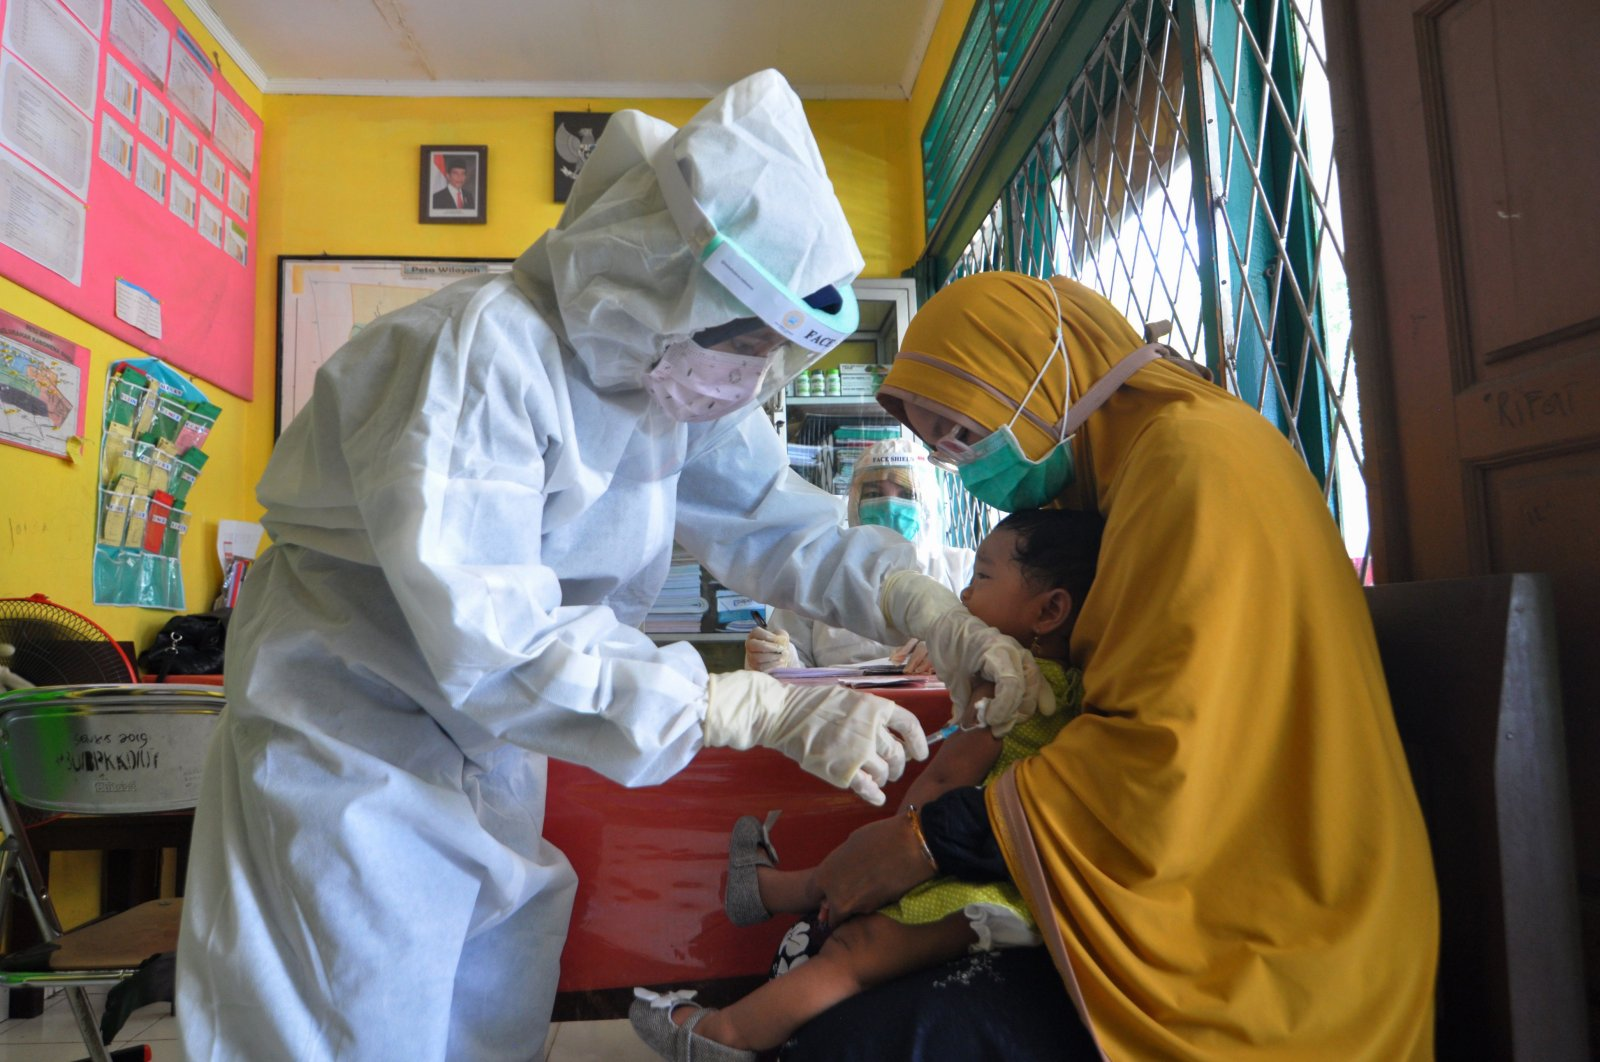 Nurses wearing protective gear give an injection of a vaccine for measles to a child at a health center in Palu, May 12, 2020. (AFP Photo)